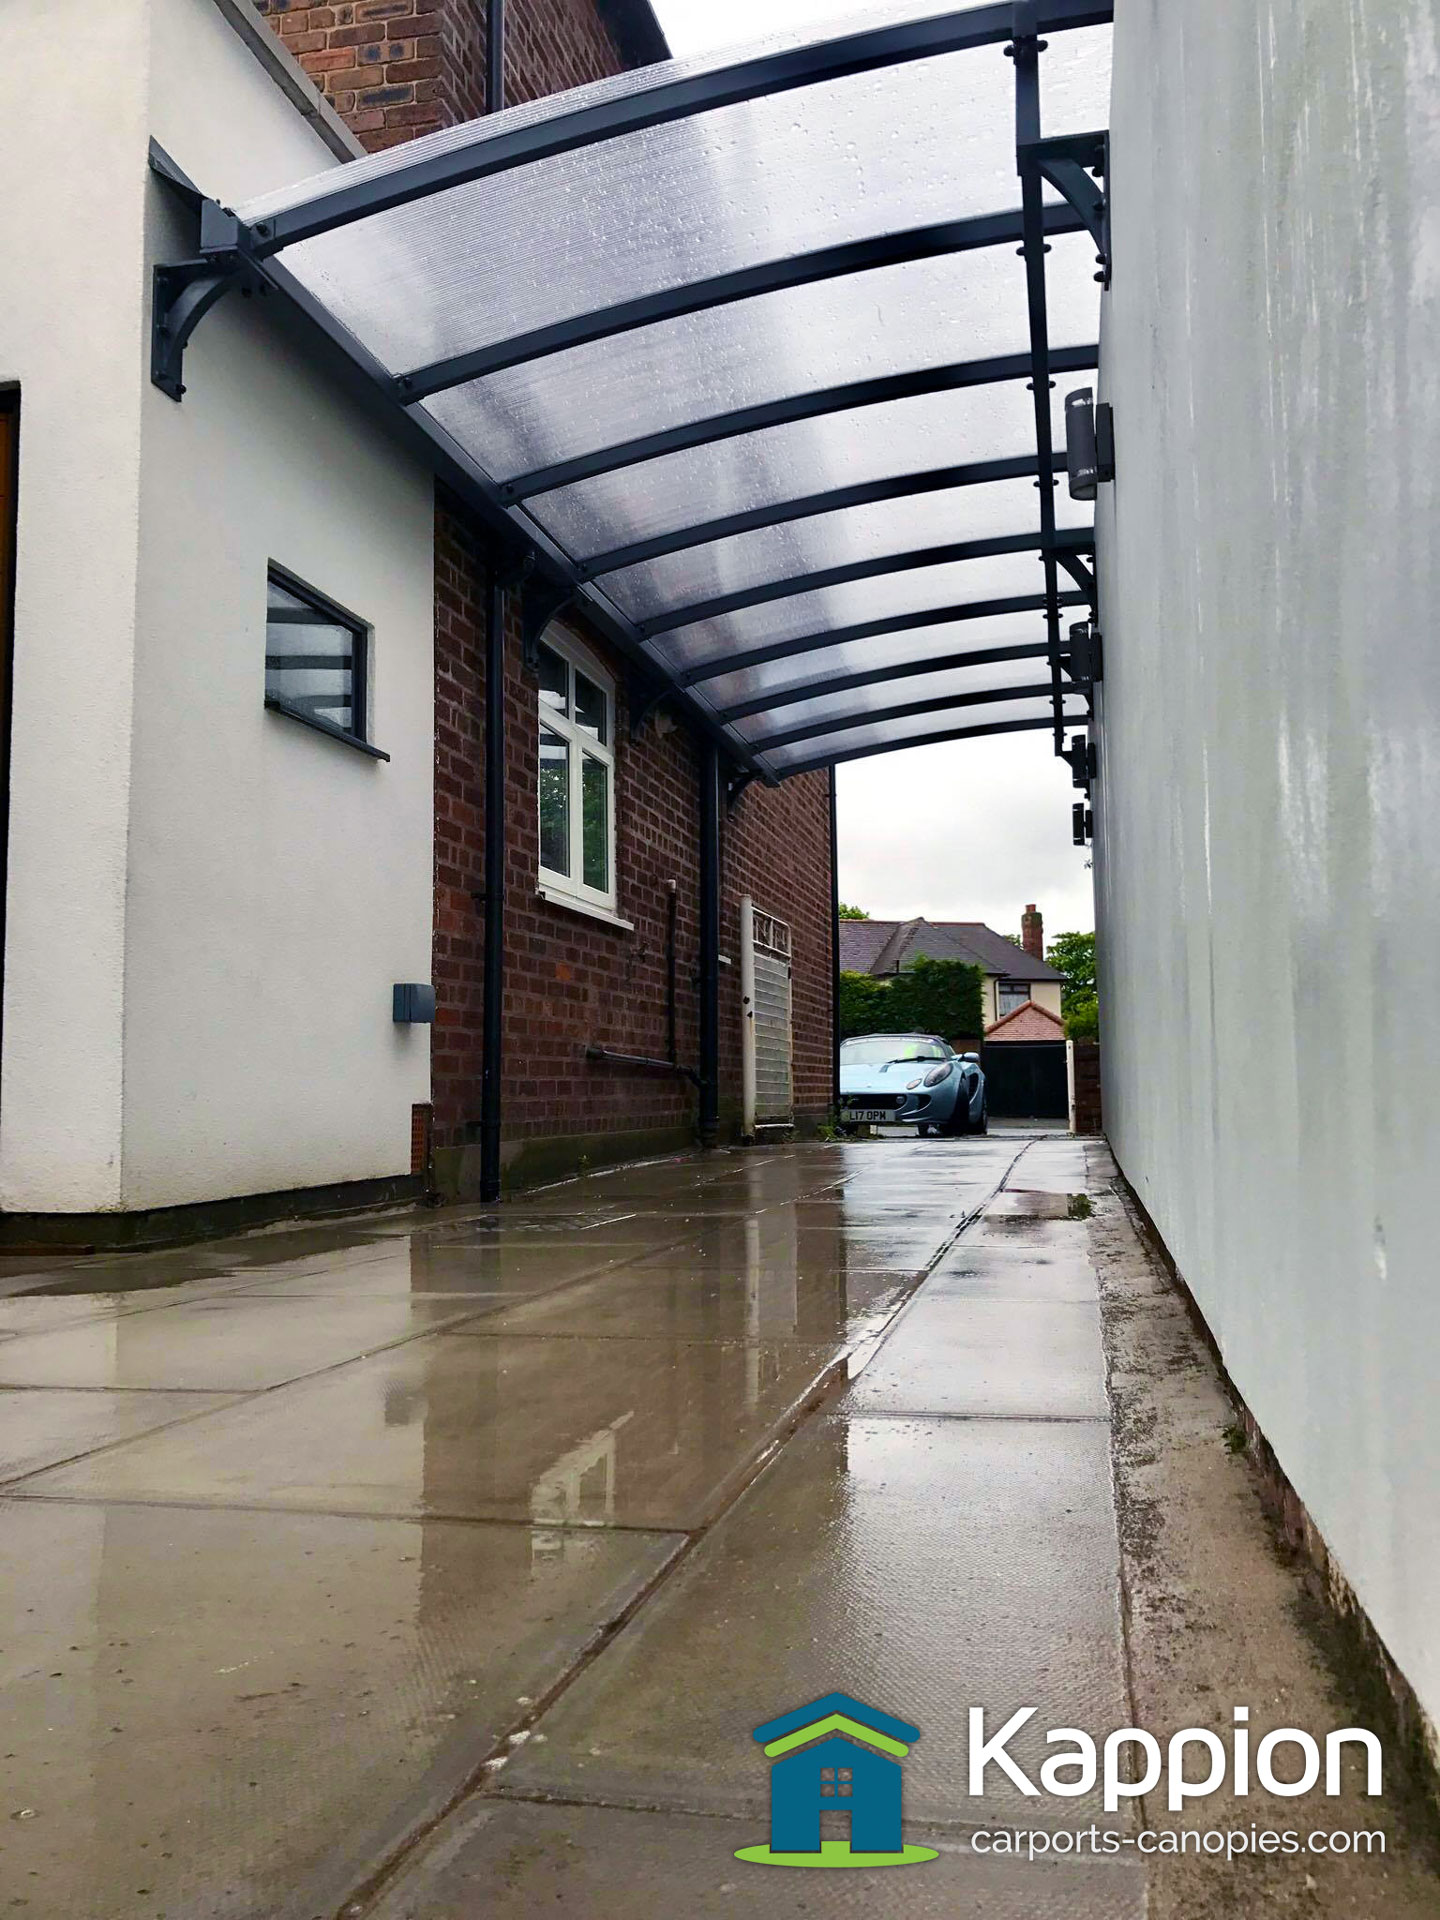 Wall Attached Carports : Wall attached carport installed in liverpool kappion